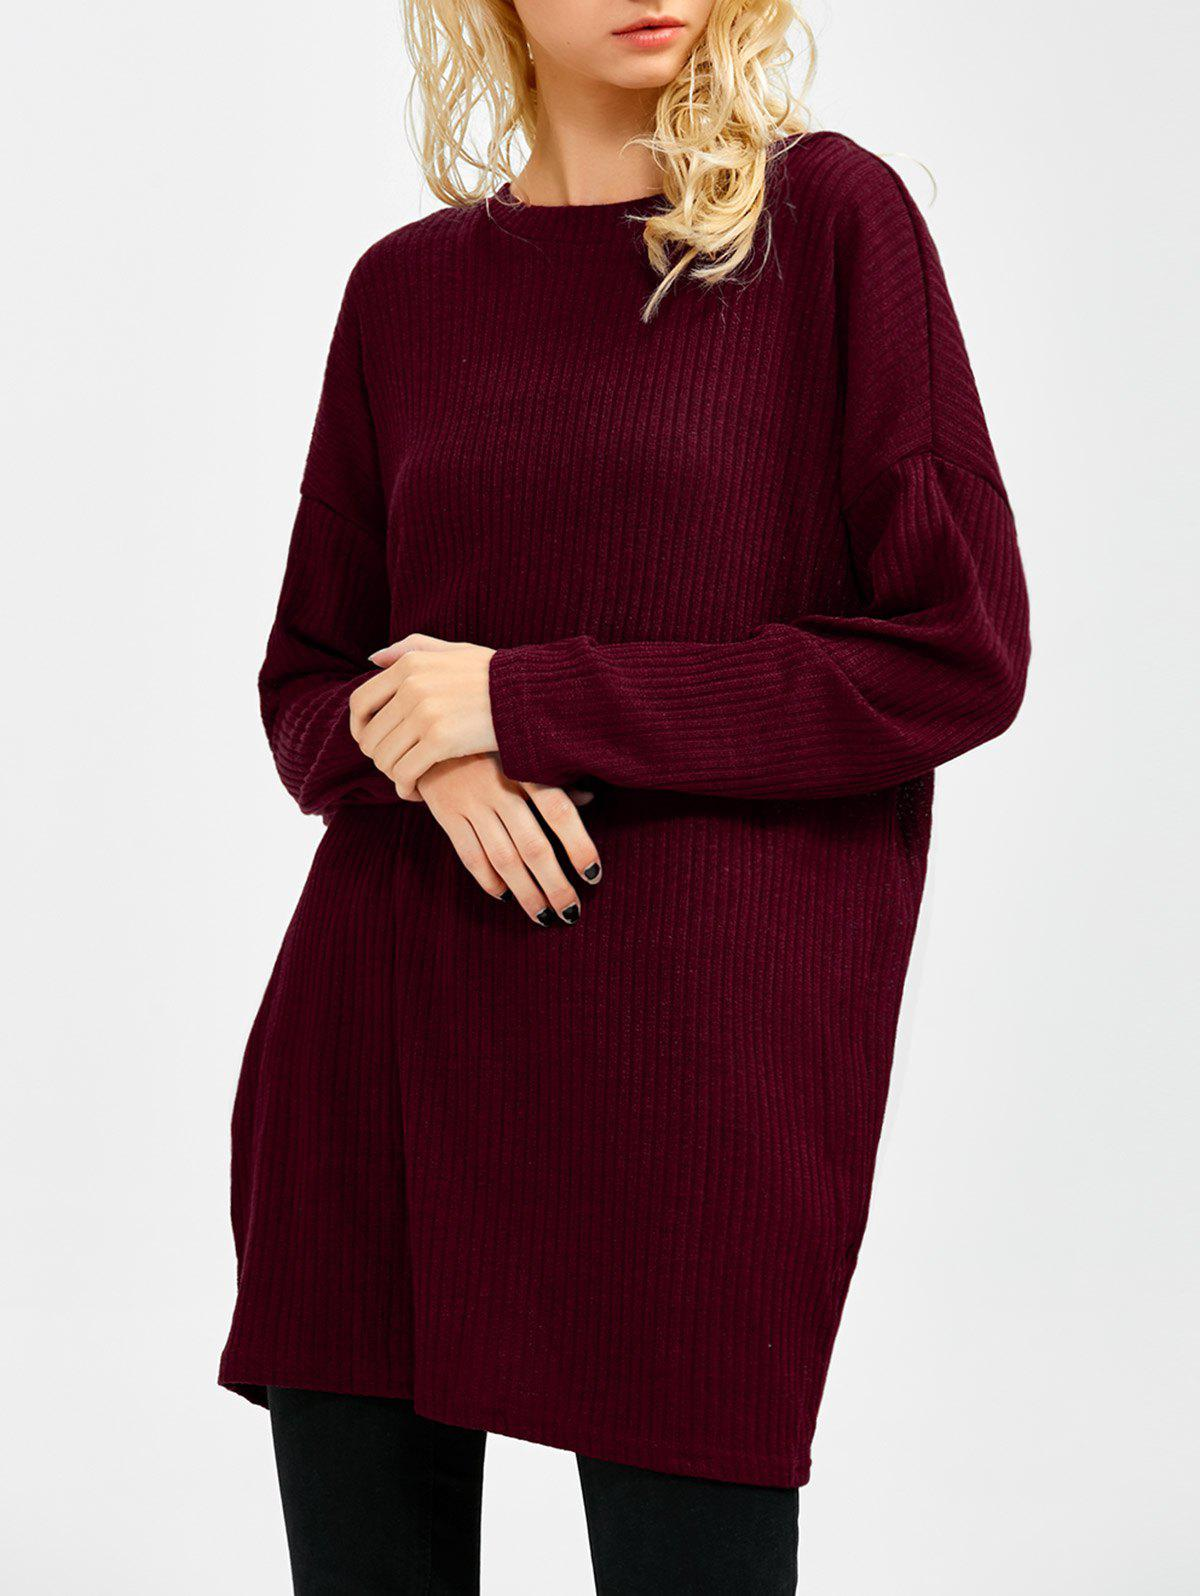 Skew Neck Long Sleeve Sweater - WINE RED S